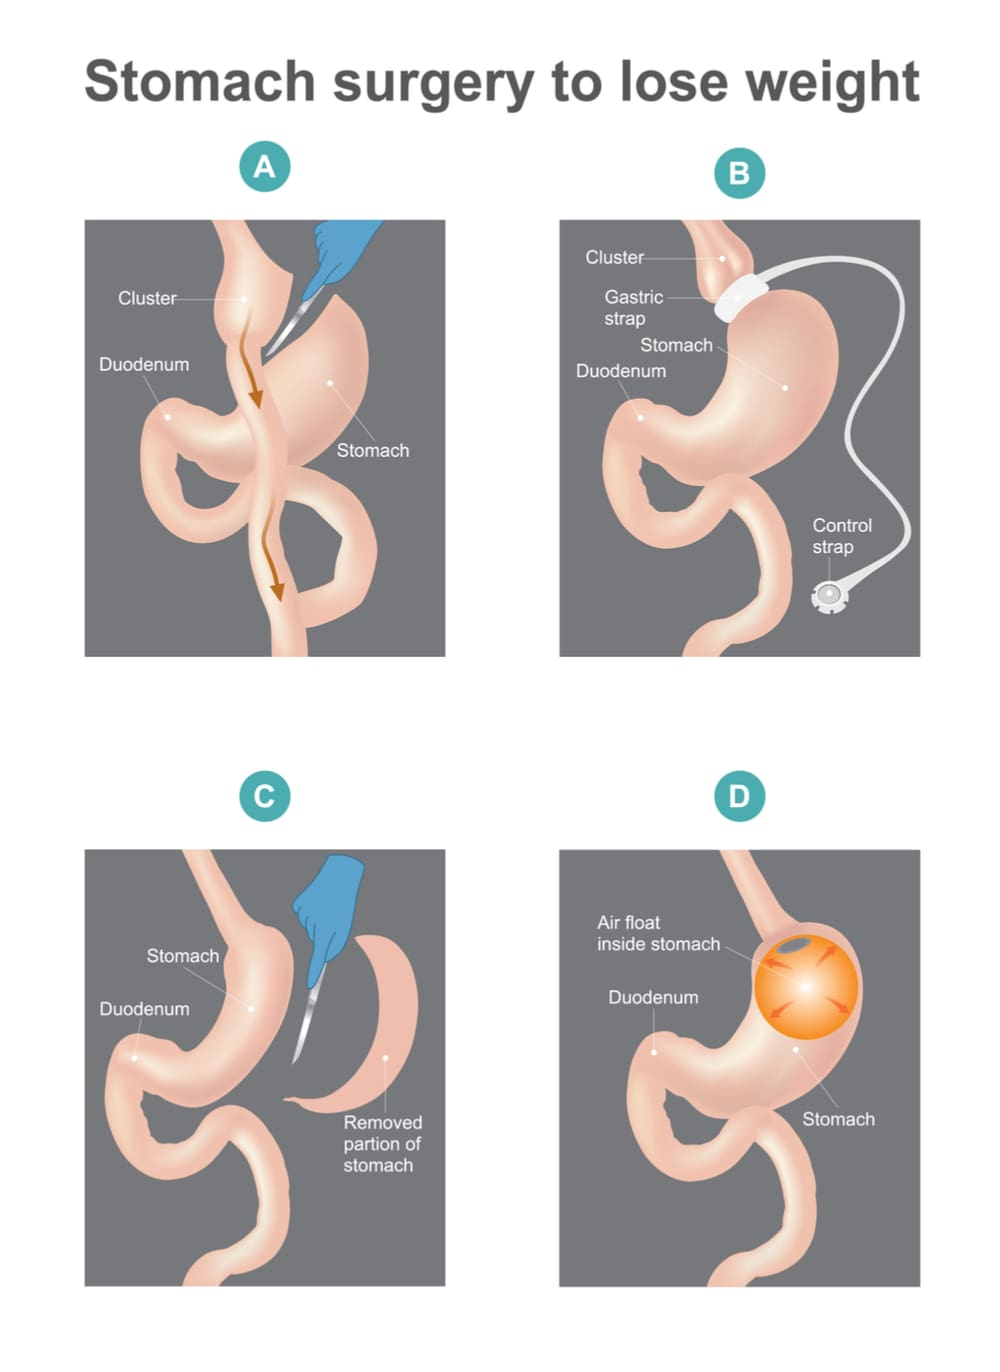 Different types of bariatric surgery procedures including sleeve gastrectomy, adjustable gastric banding, etc..